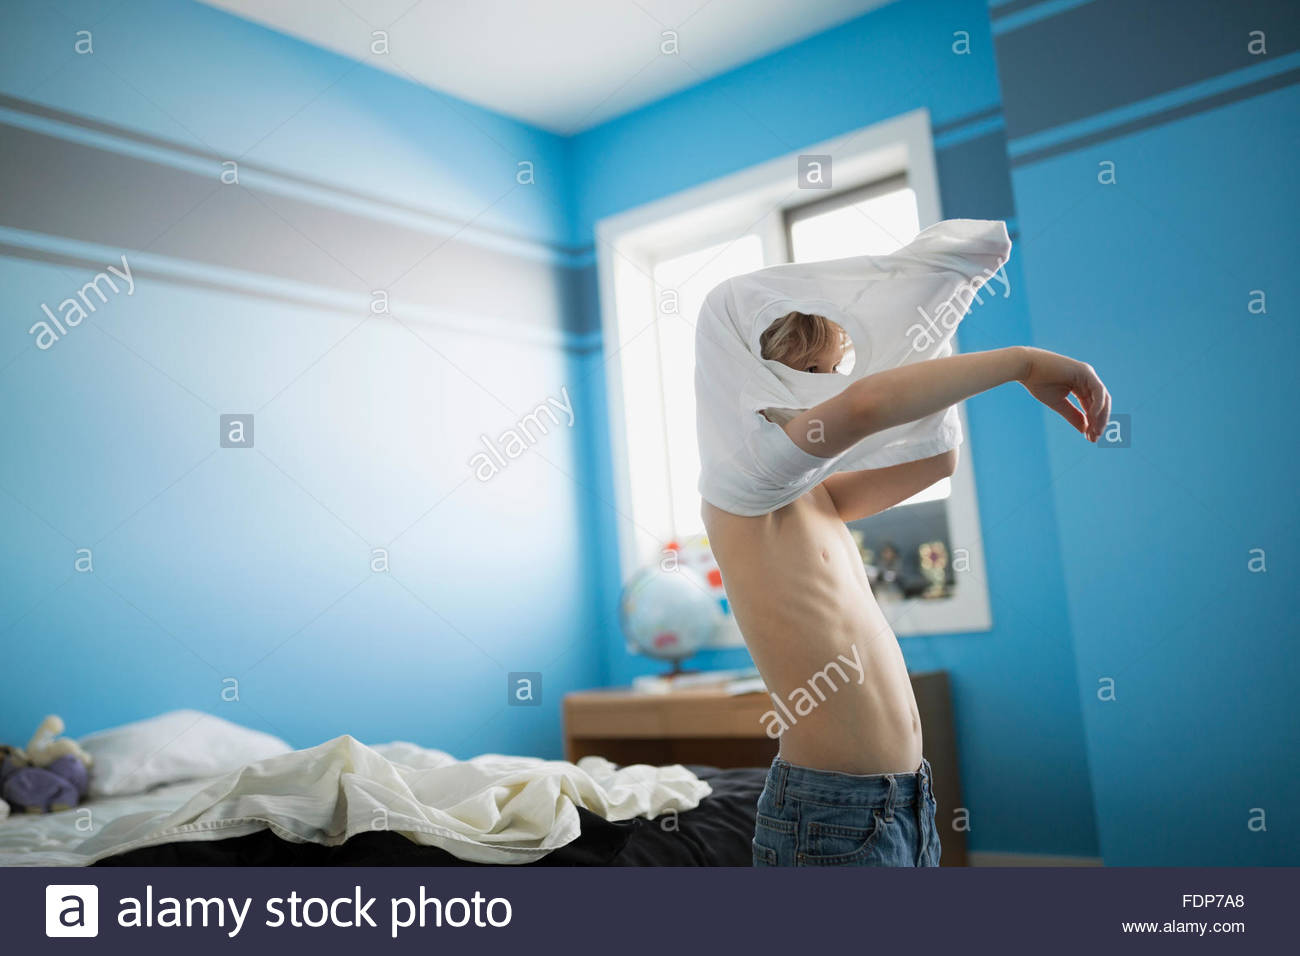 Boy putting on shirt in bedroom - Stock Image